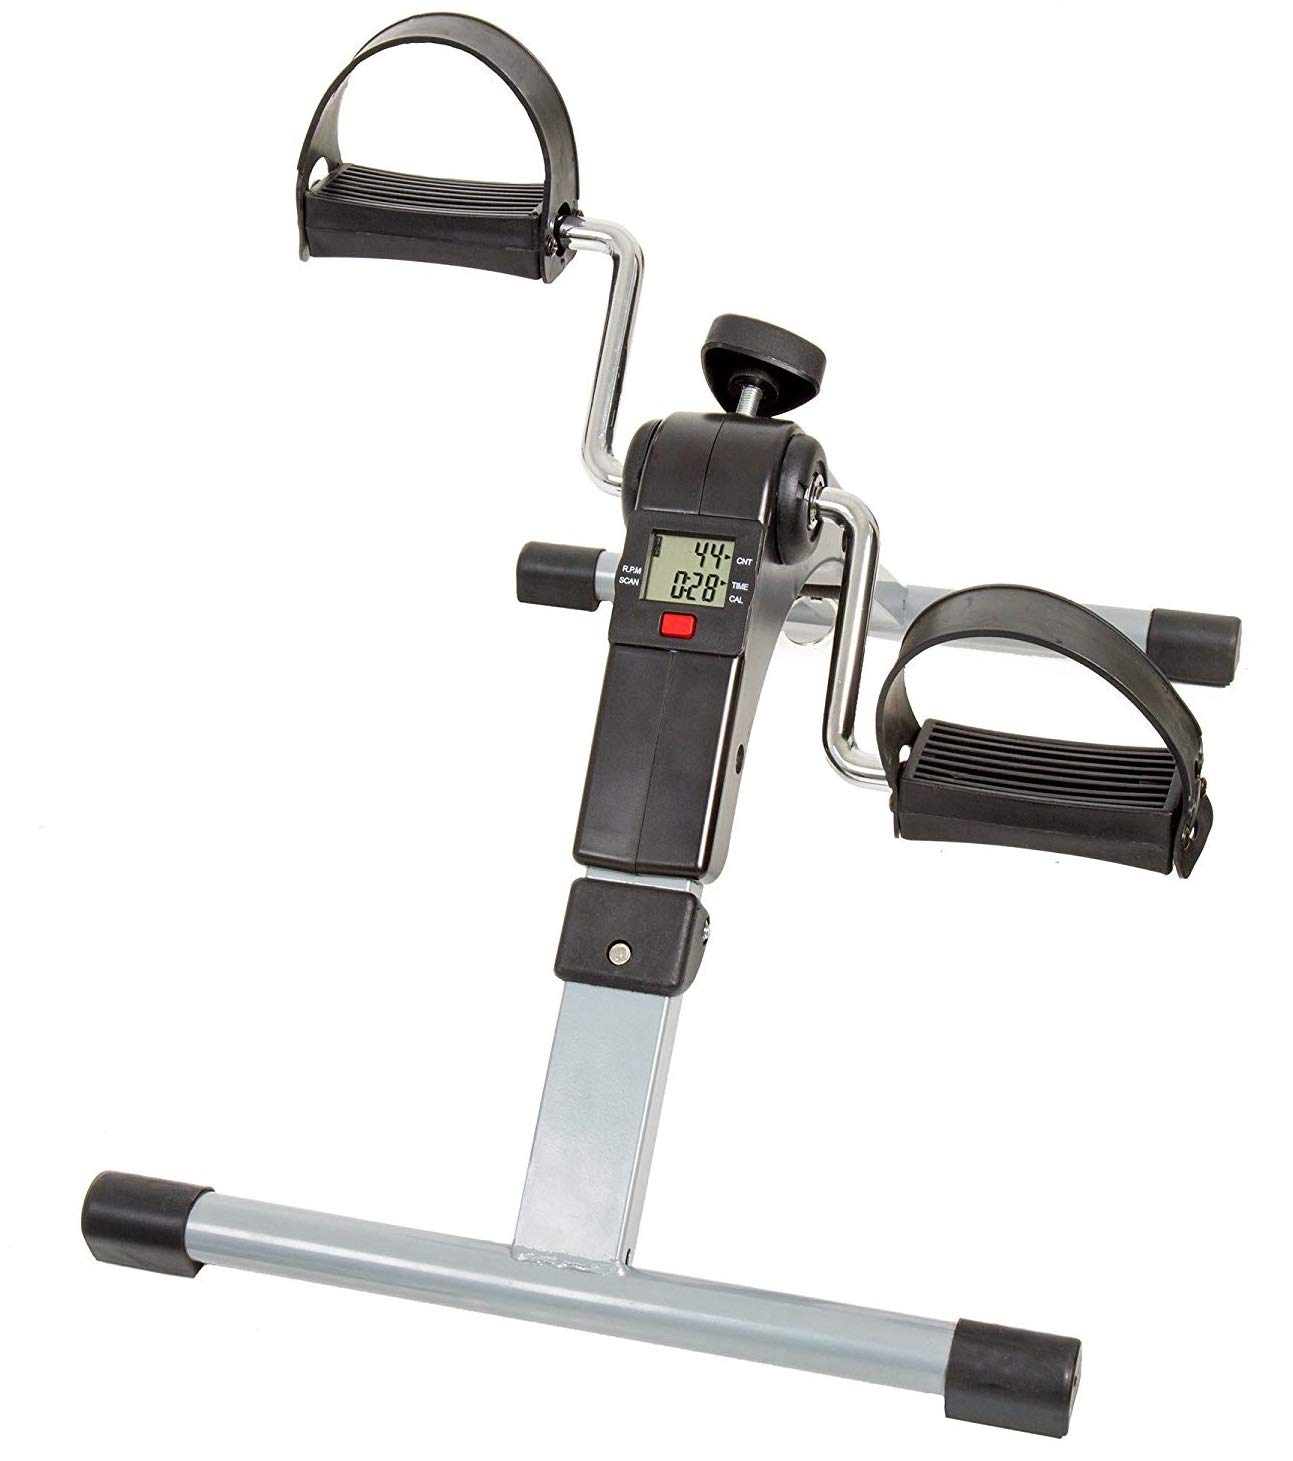 Wakeman Portable Folding Fitness Pedal Stationary Under Desk Indoor Exercise Bike for Arms, Legs, Physical Therapy Limited Edition